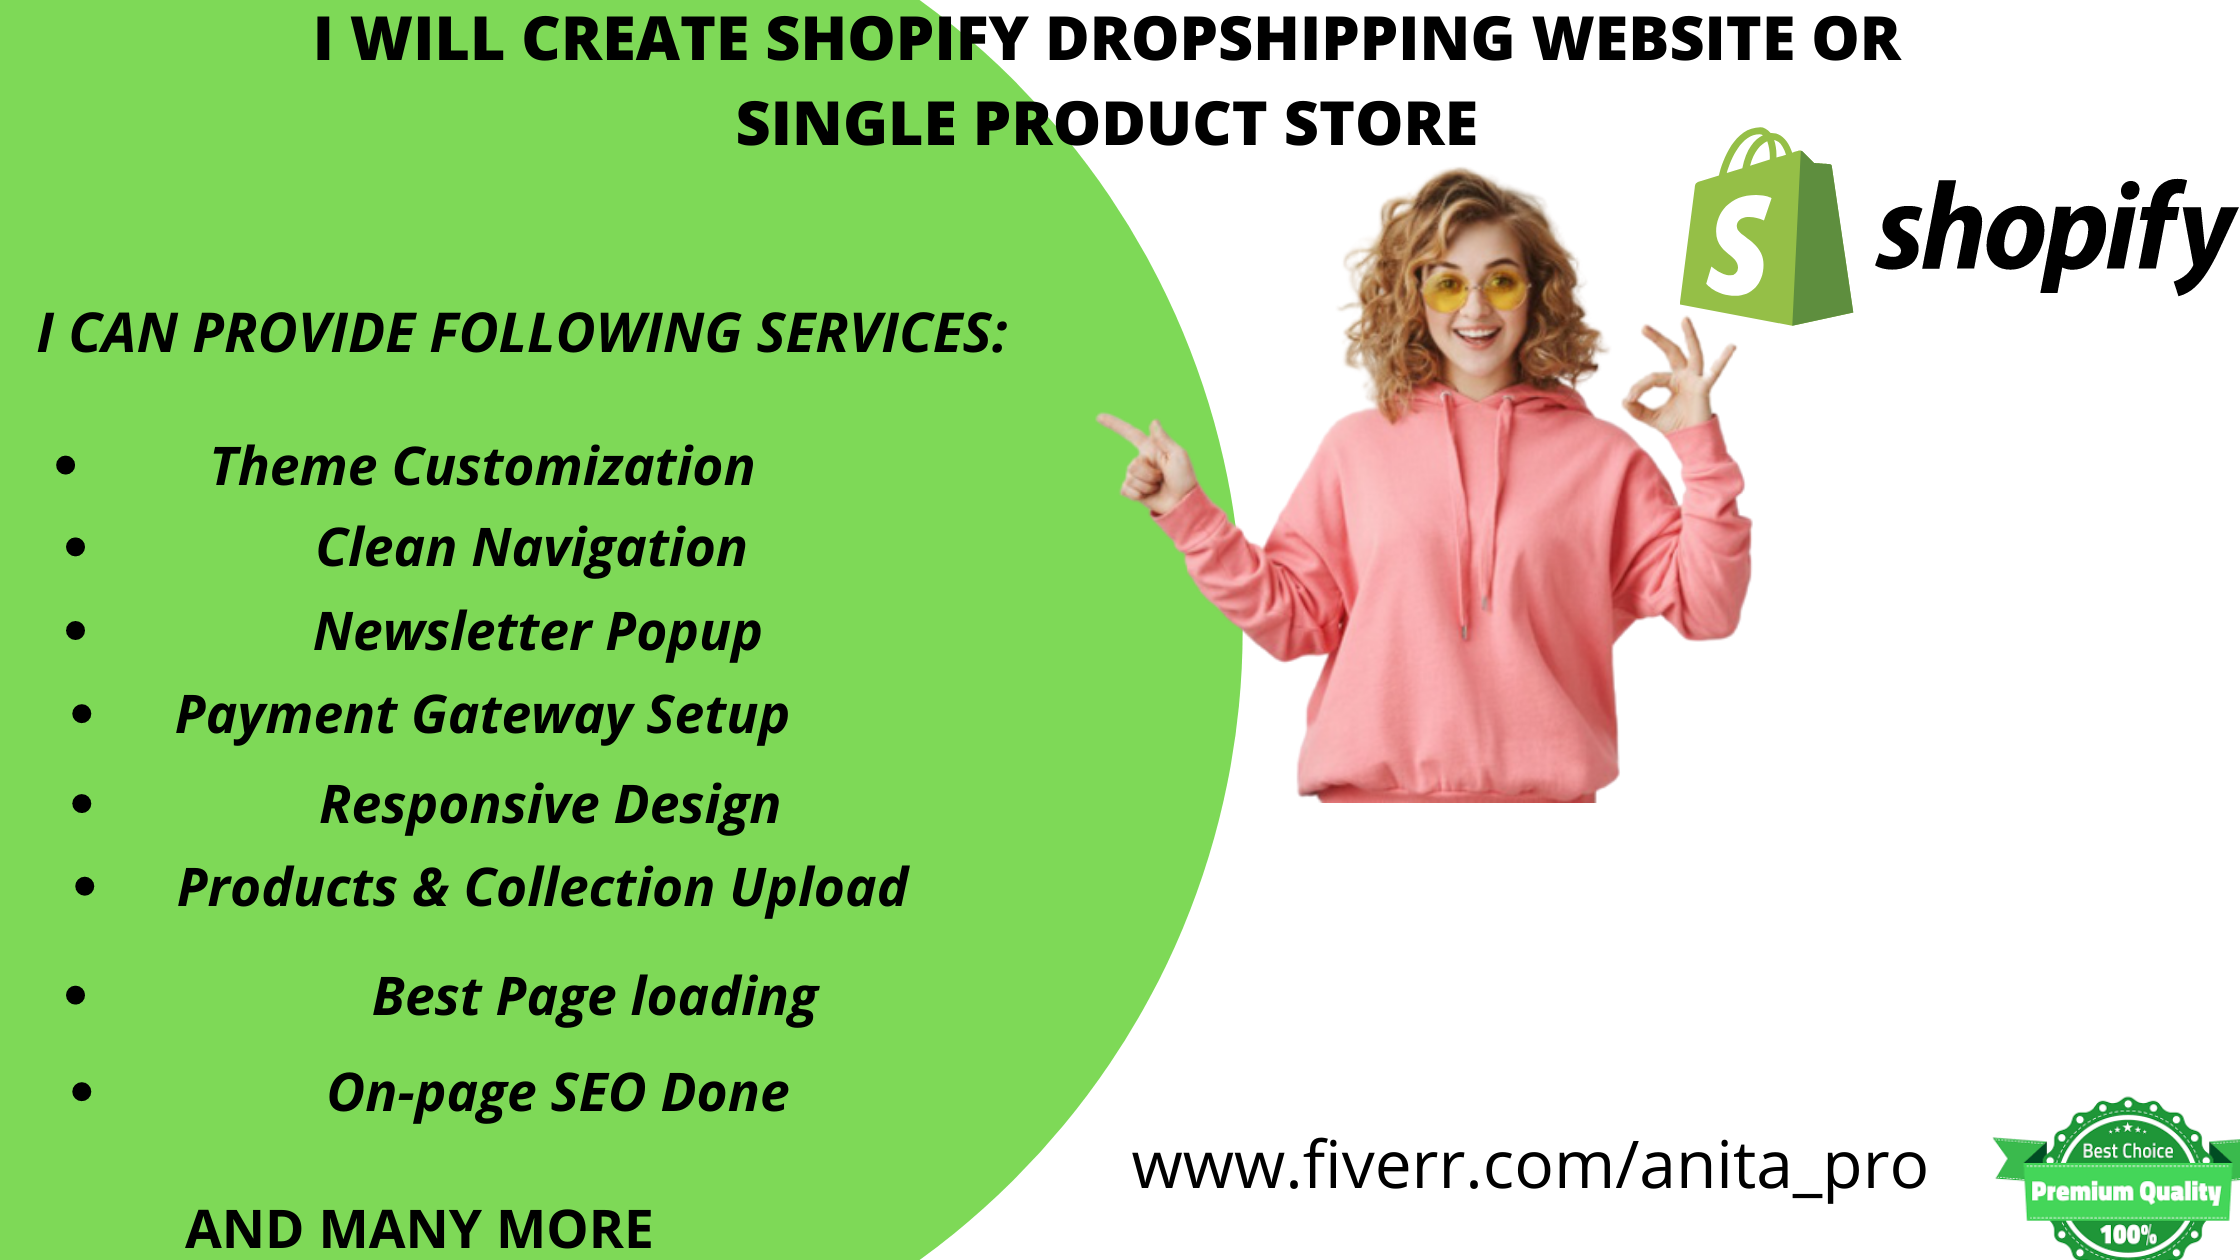 I will create shopify dropshipping website or single product store, FiverrBox